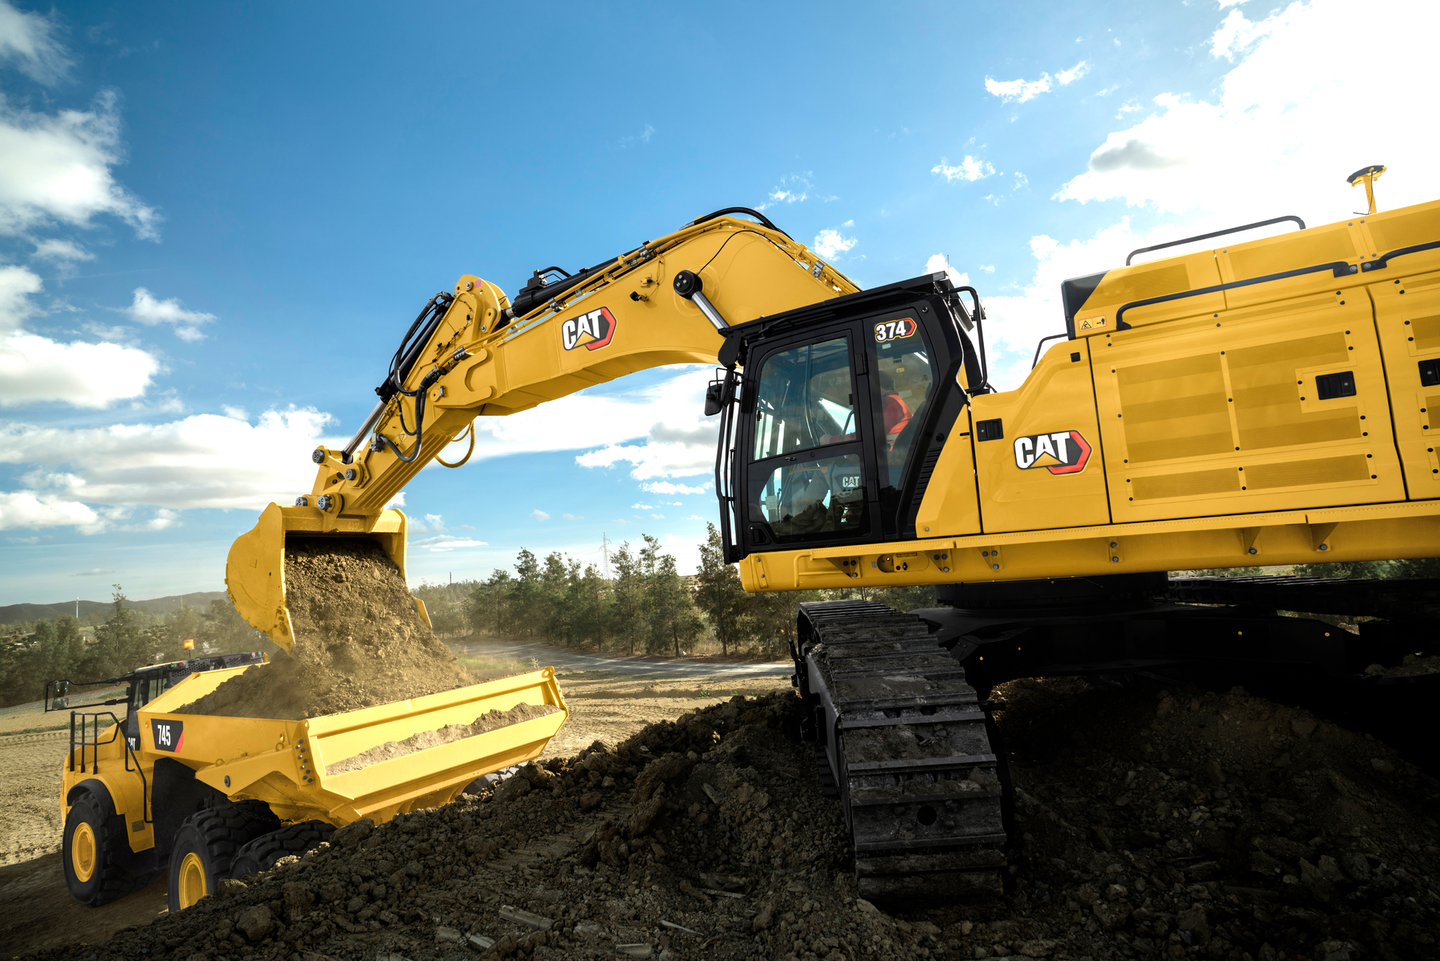 The Cat 374 cab has a Bluetooth-integrated radio and USB ports for phone charging.